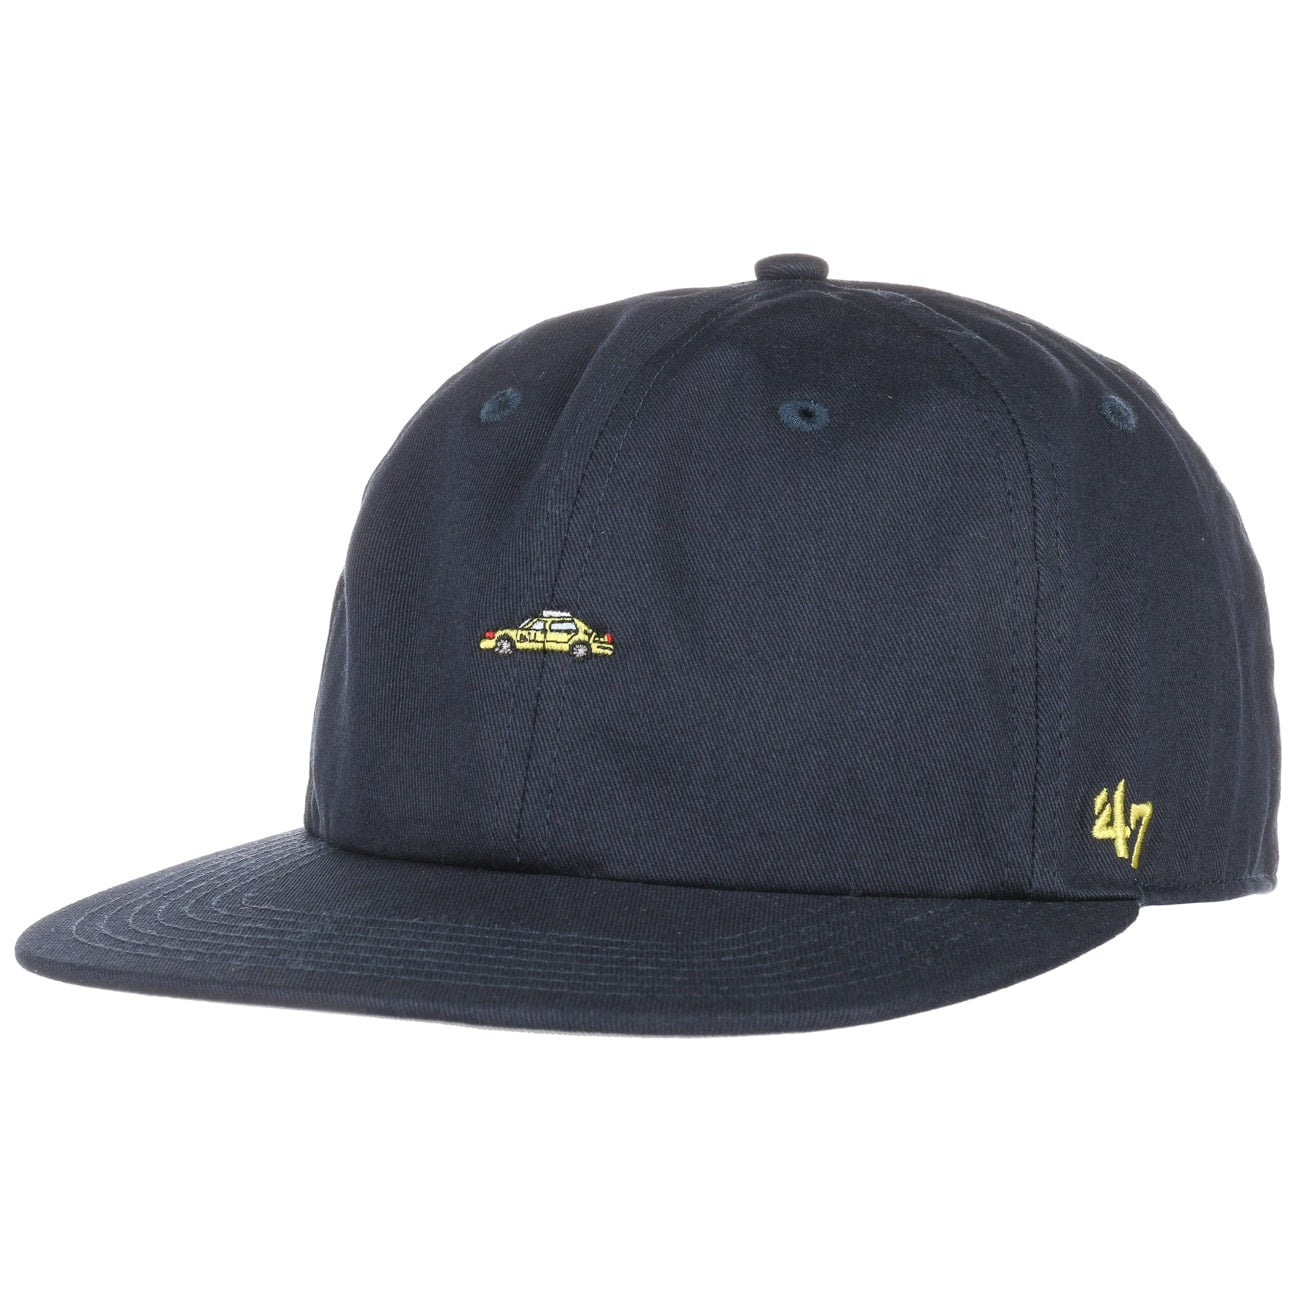 Casquette Beams Icon Yankees by 47 Brand  casquette de baseball